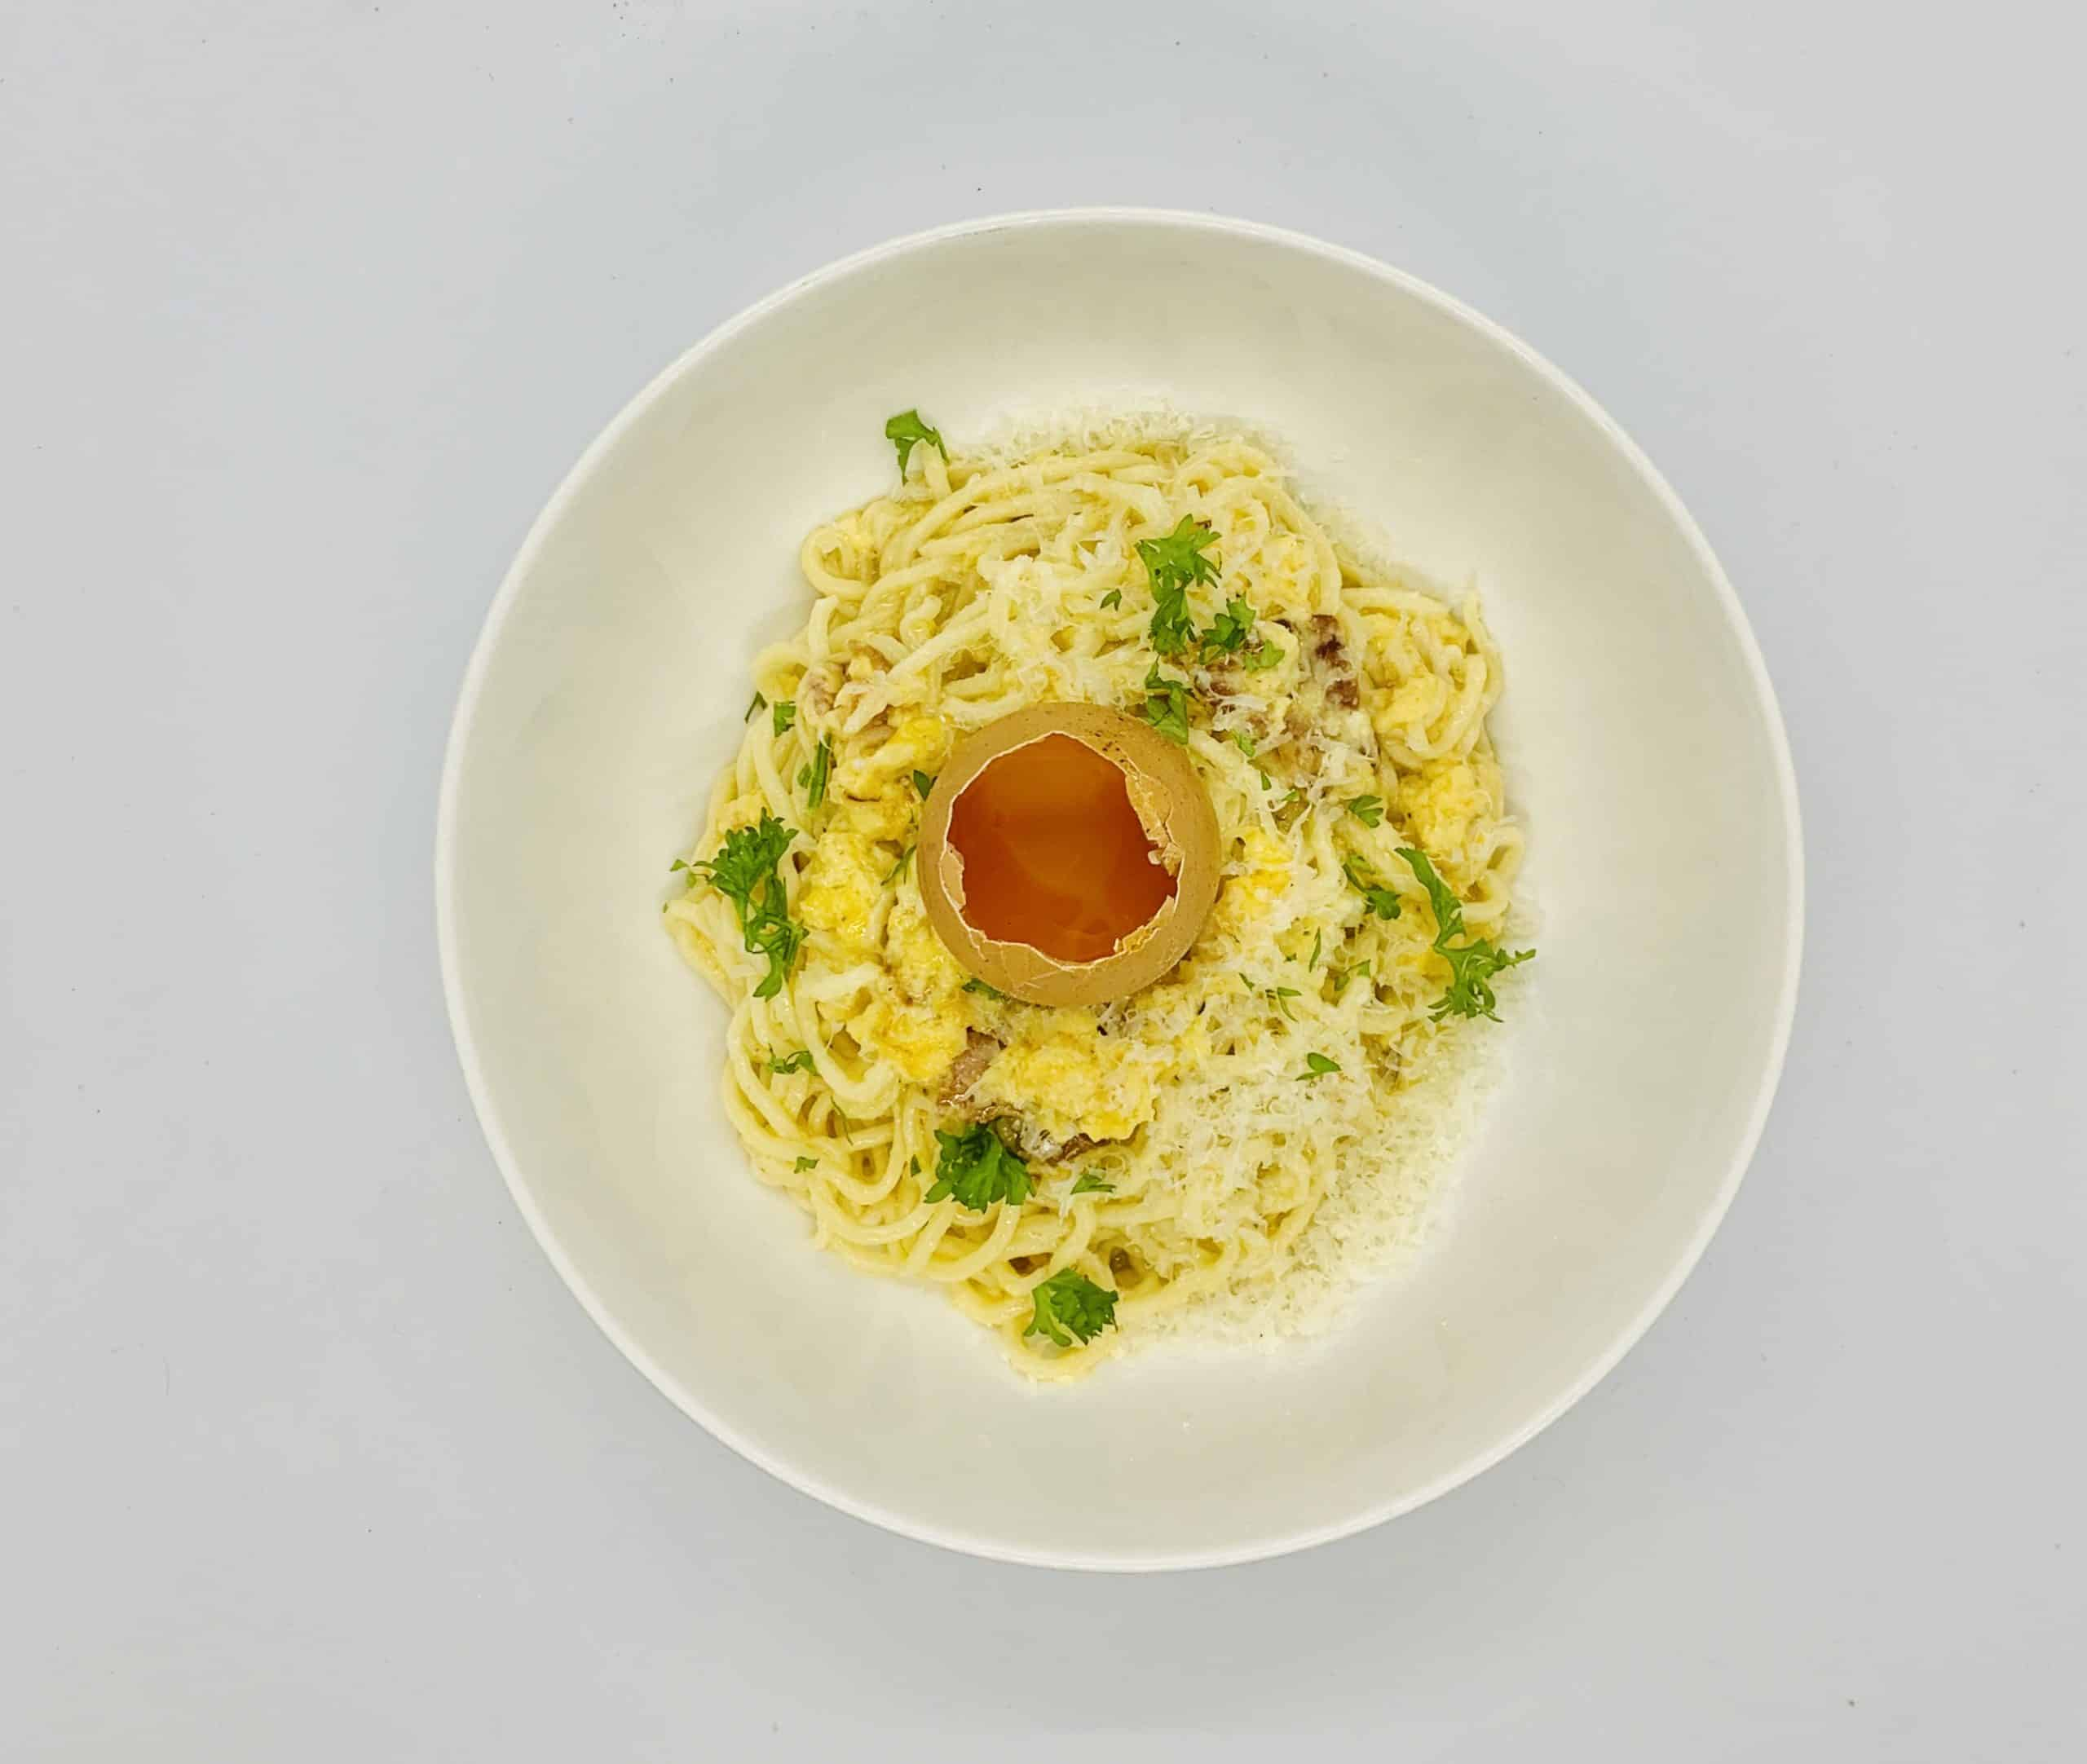 ChillaxBBQ Stay@Home Recipes #40 - Home-Made Spaghetti Carbonara